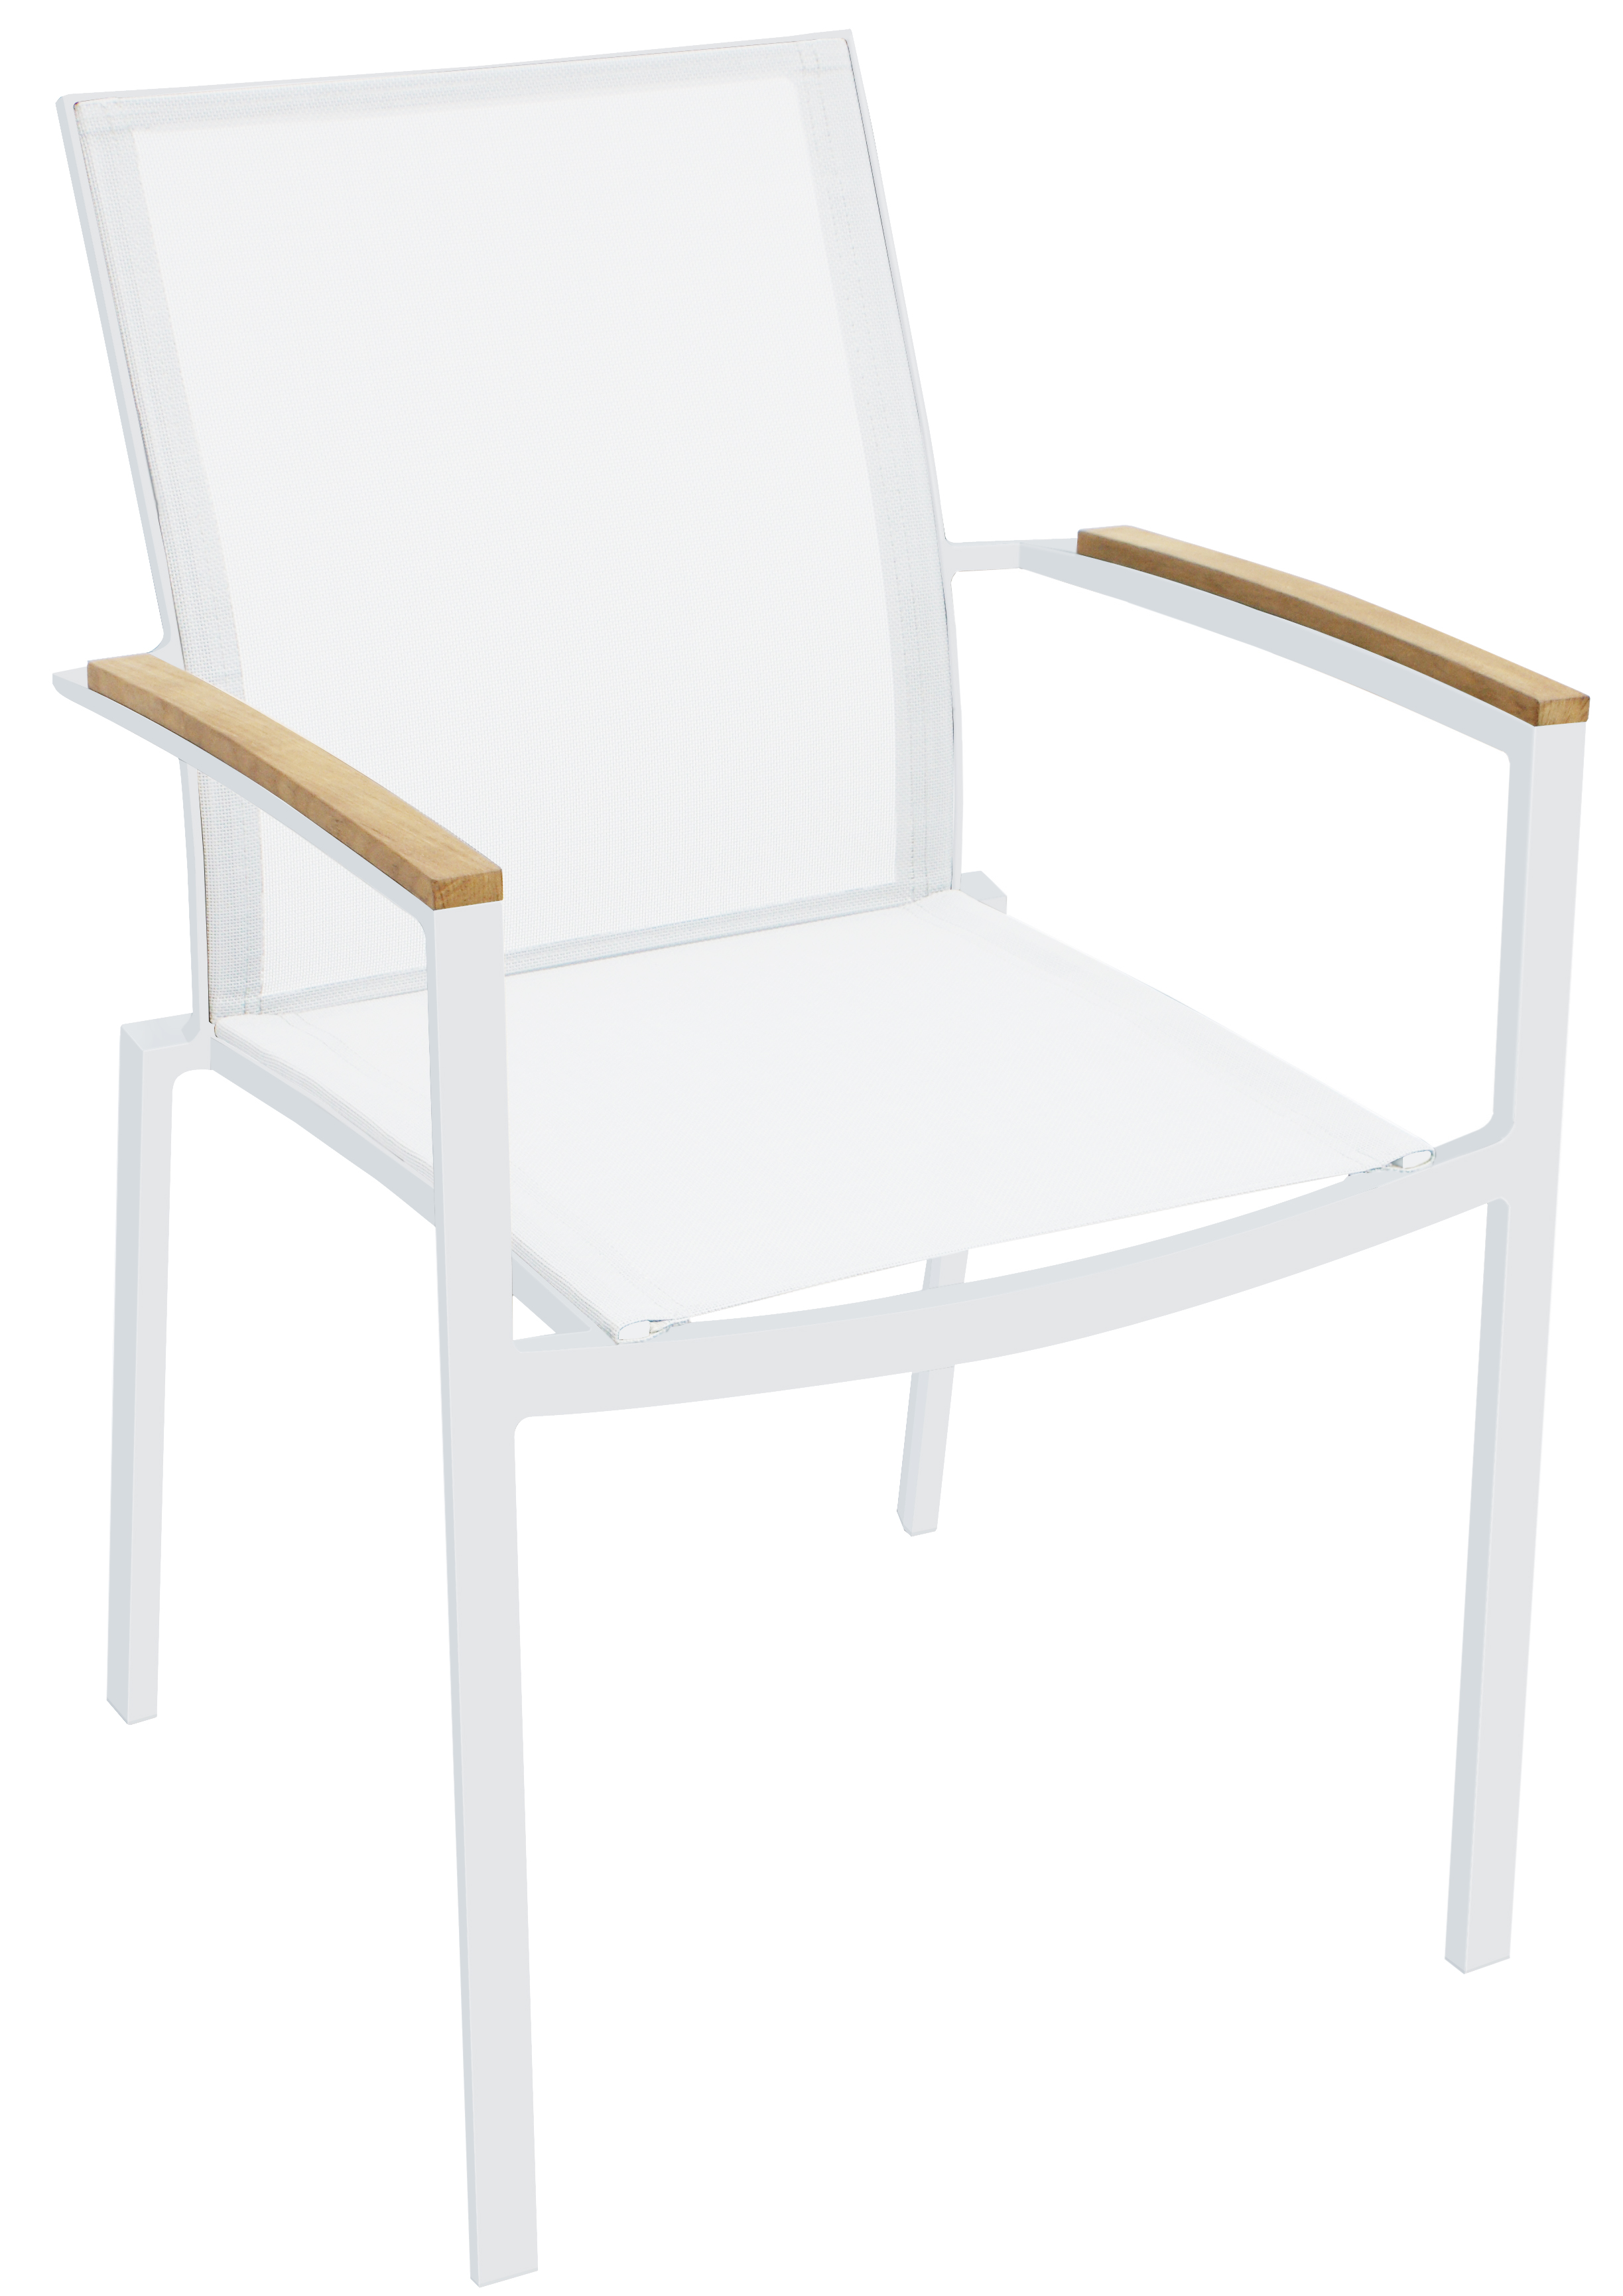 Sanctuary White Outdoor Dining Armchair| Whiteline